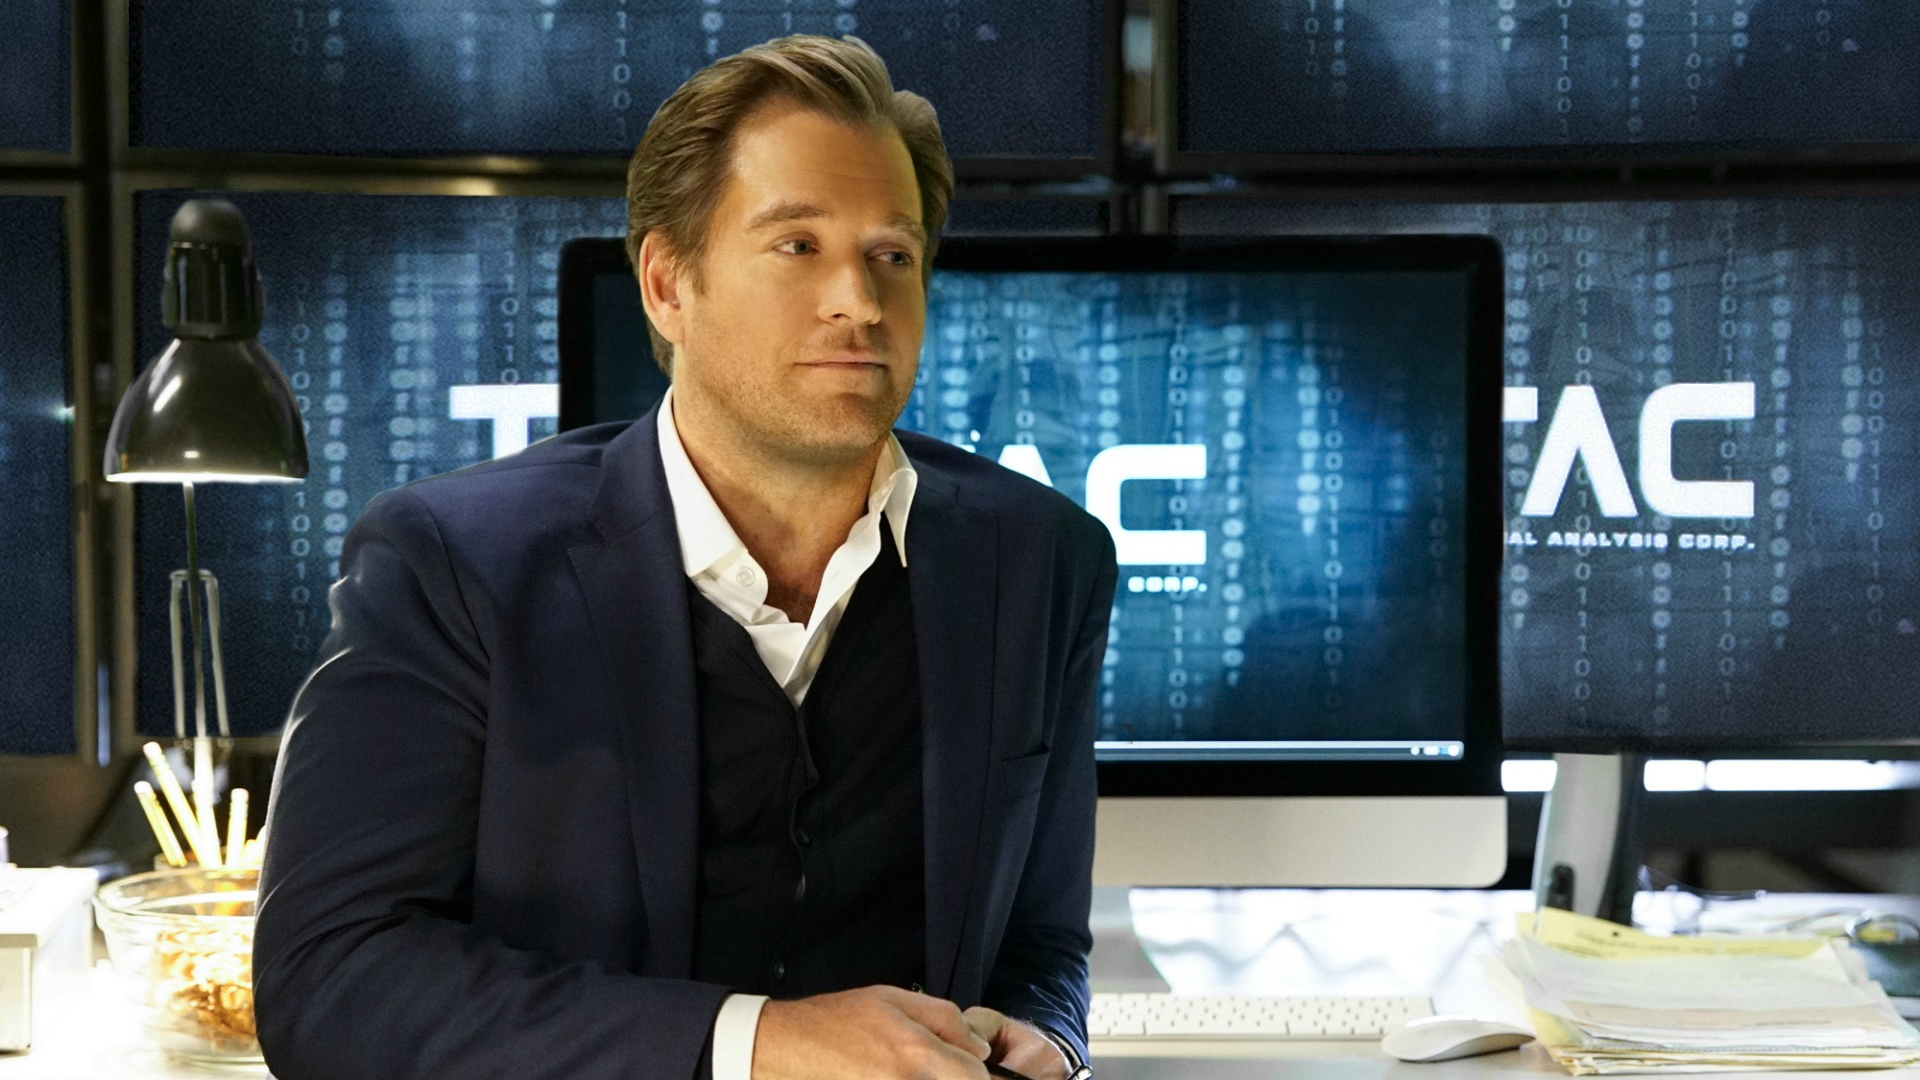 We're psyched to see more of Dr. Bull's skills.